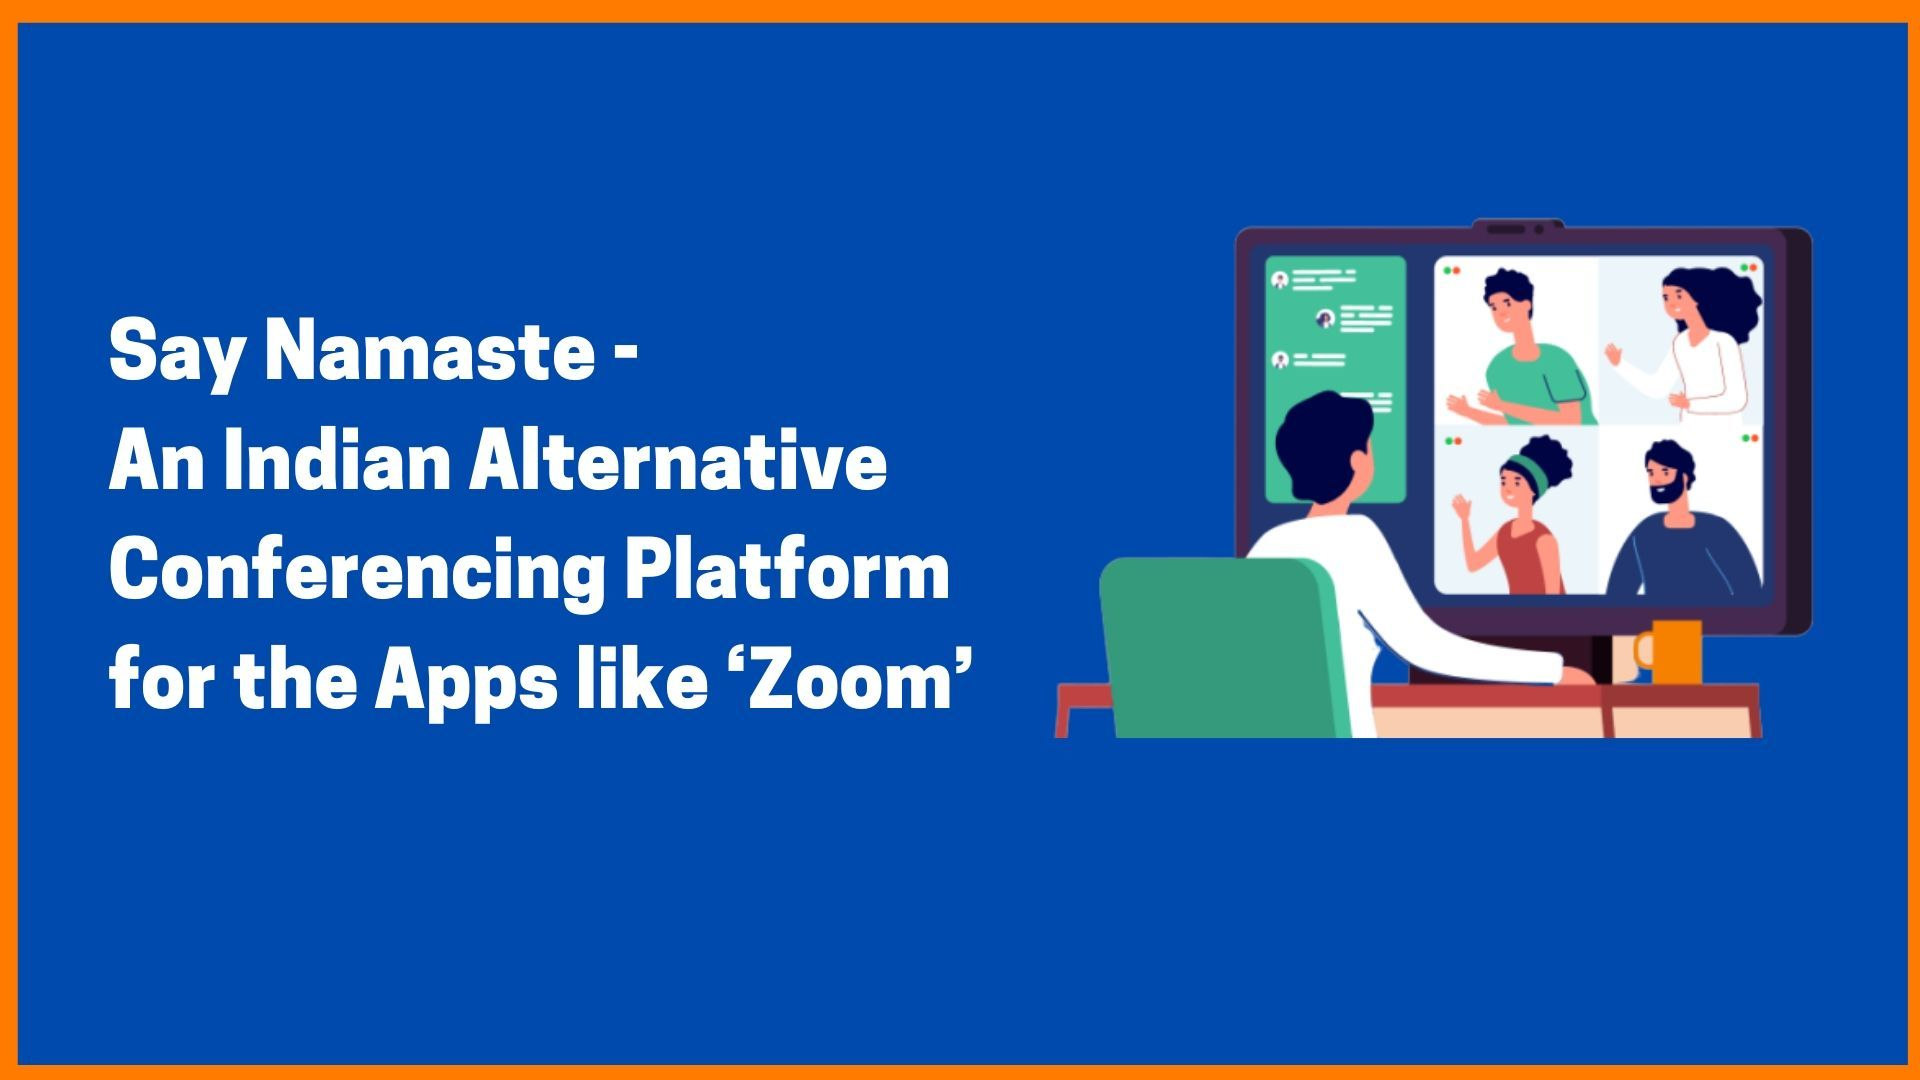 Say Namaste- An Indian Alternative Conferencing Platform for the Apps like 'Zoom'